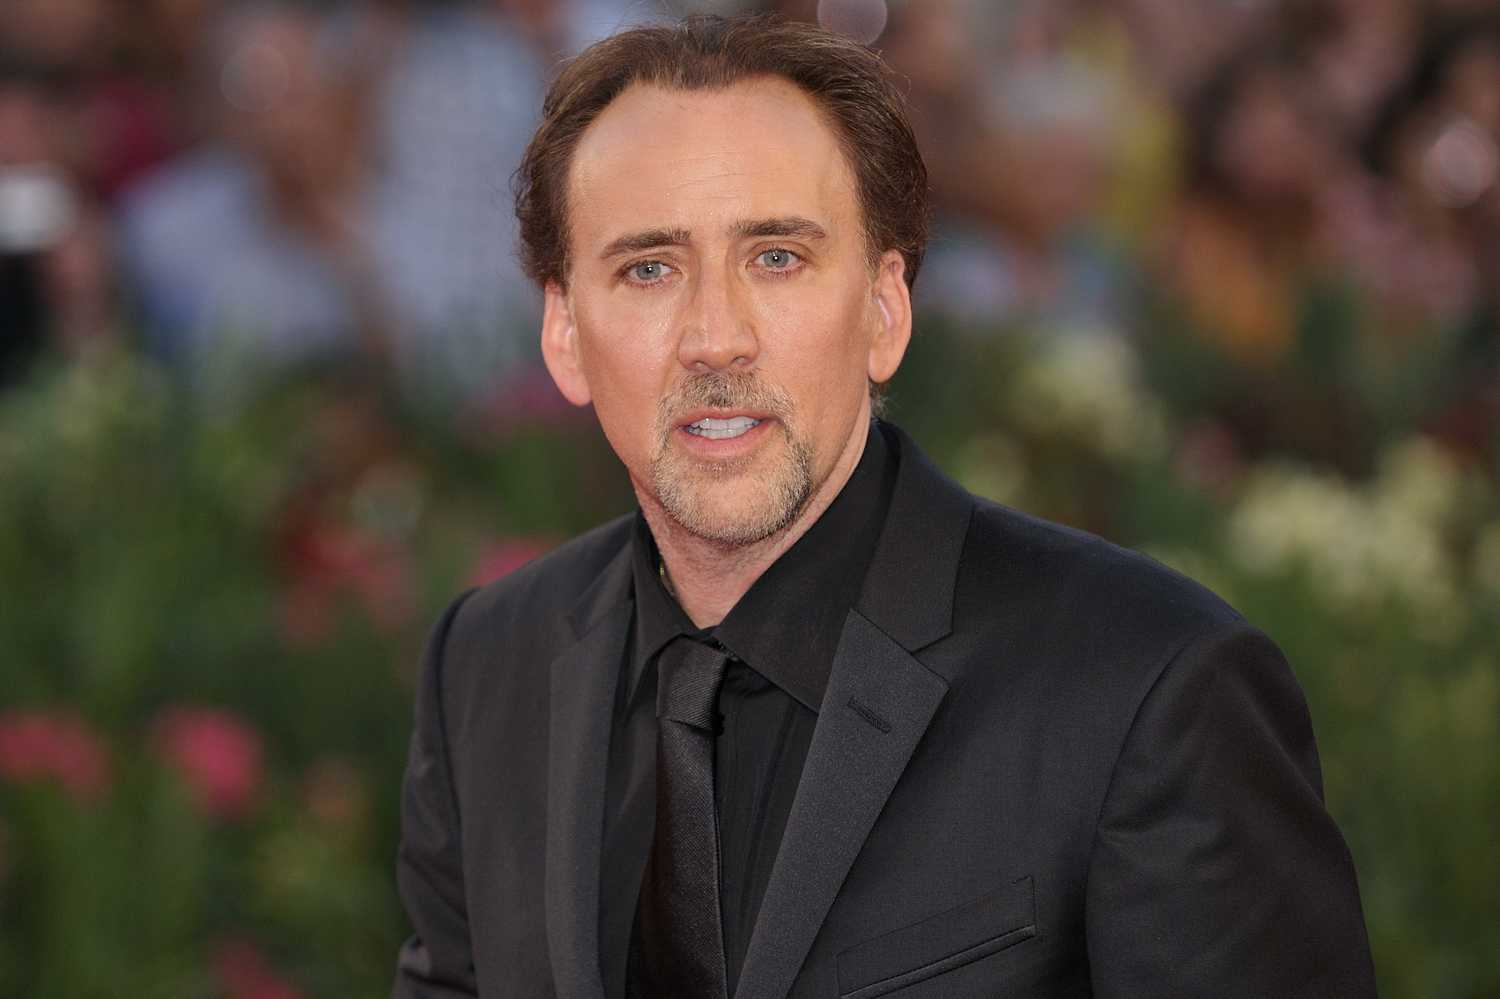 nicolas cage wikinicolas cage films, nicolas cage movies, nicolas cage face, nicolas cage filmleri, nicolas cage instagram, nicolas cage gif, nicolas cage son, nicolas cage superman, nicolas cage 2016, nicolas cage memes, nicolas cage 2017, nicolas cage height, nicolas cage young, nicolas cage wiki, nicolas cage filme, nicolas cage imdb, nicolas cage laugh, nicolas cage ghost rider, nicolas cage face off, nicolas cage movies list